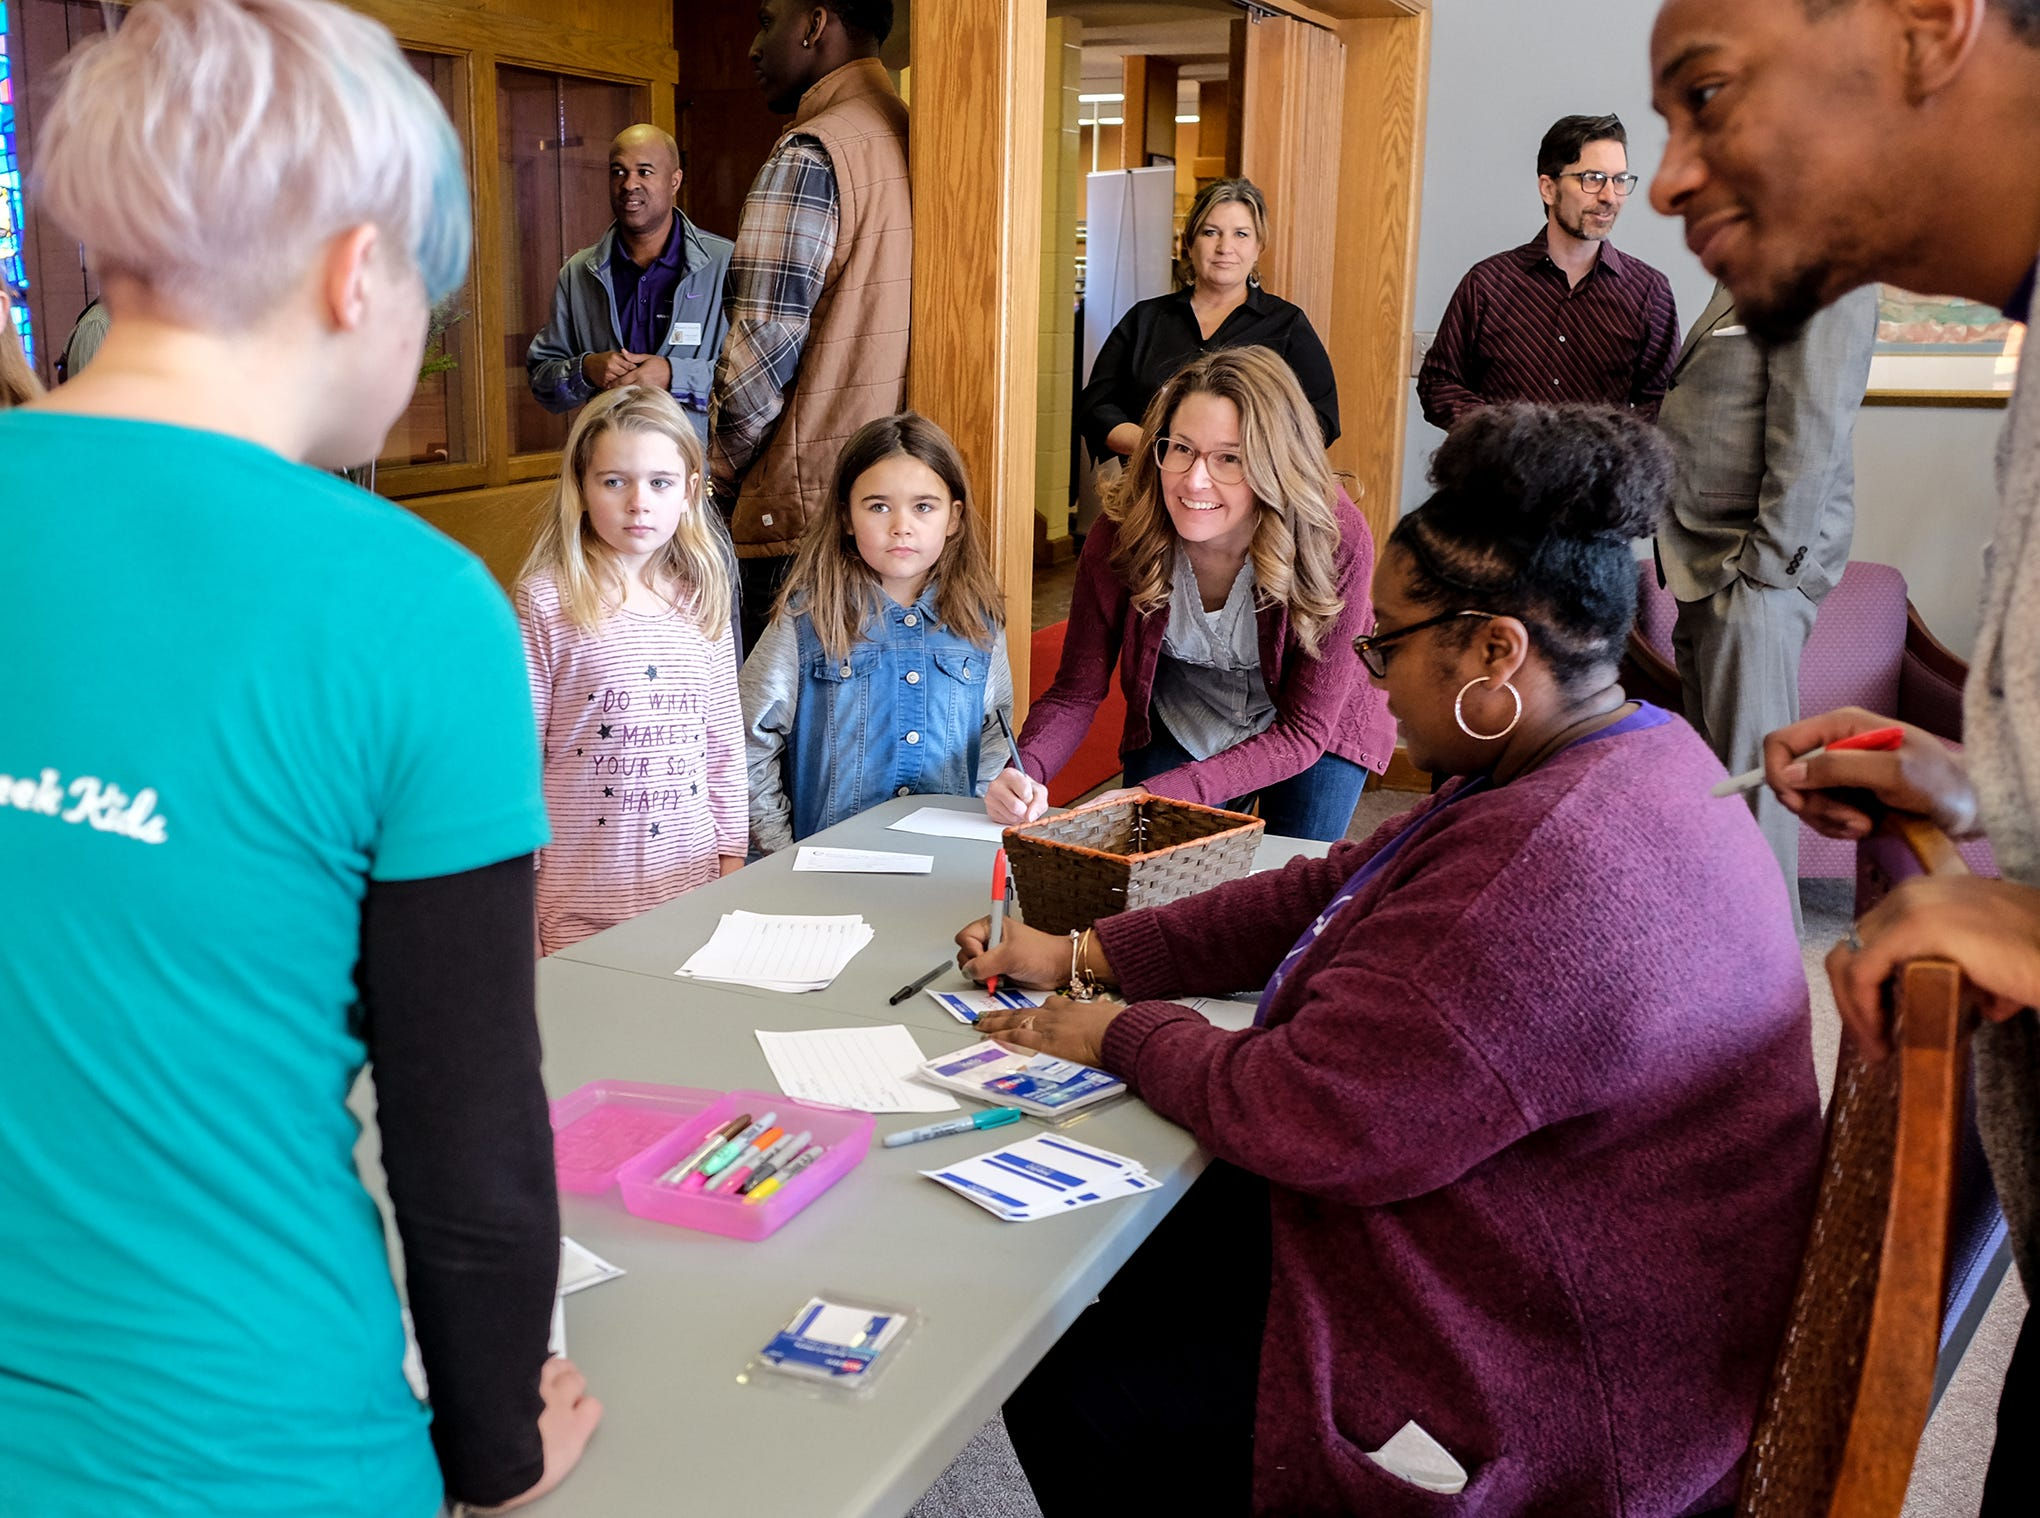 Kendra Byrd, sitting, registers youngsters from Sycamore Creek Church for child care before services at Epicenter of Worship Church Sunday, Jan. 20, 2019.